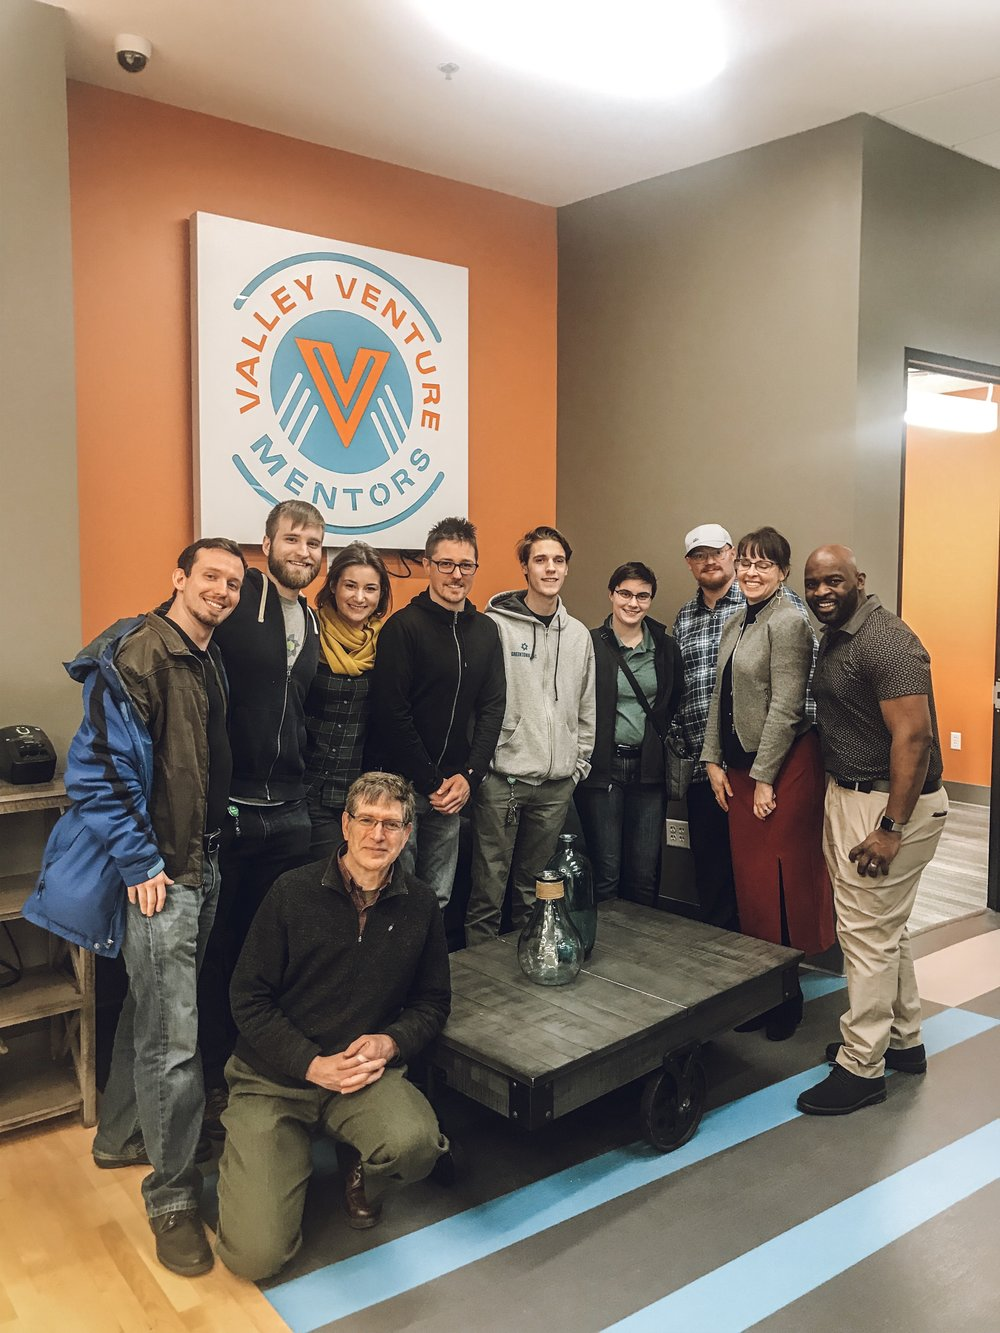 Greentown Learn and VVM Startups and Staff